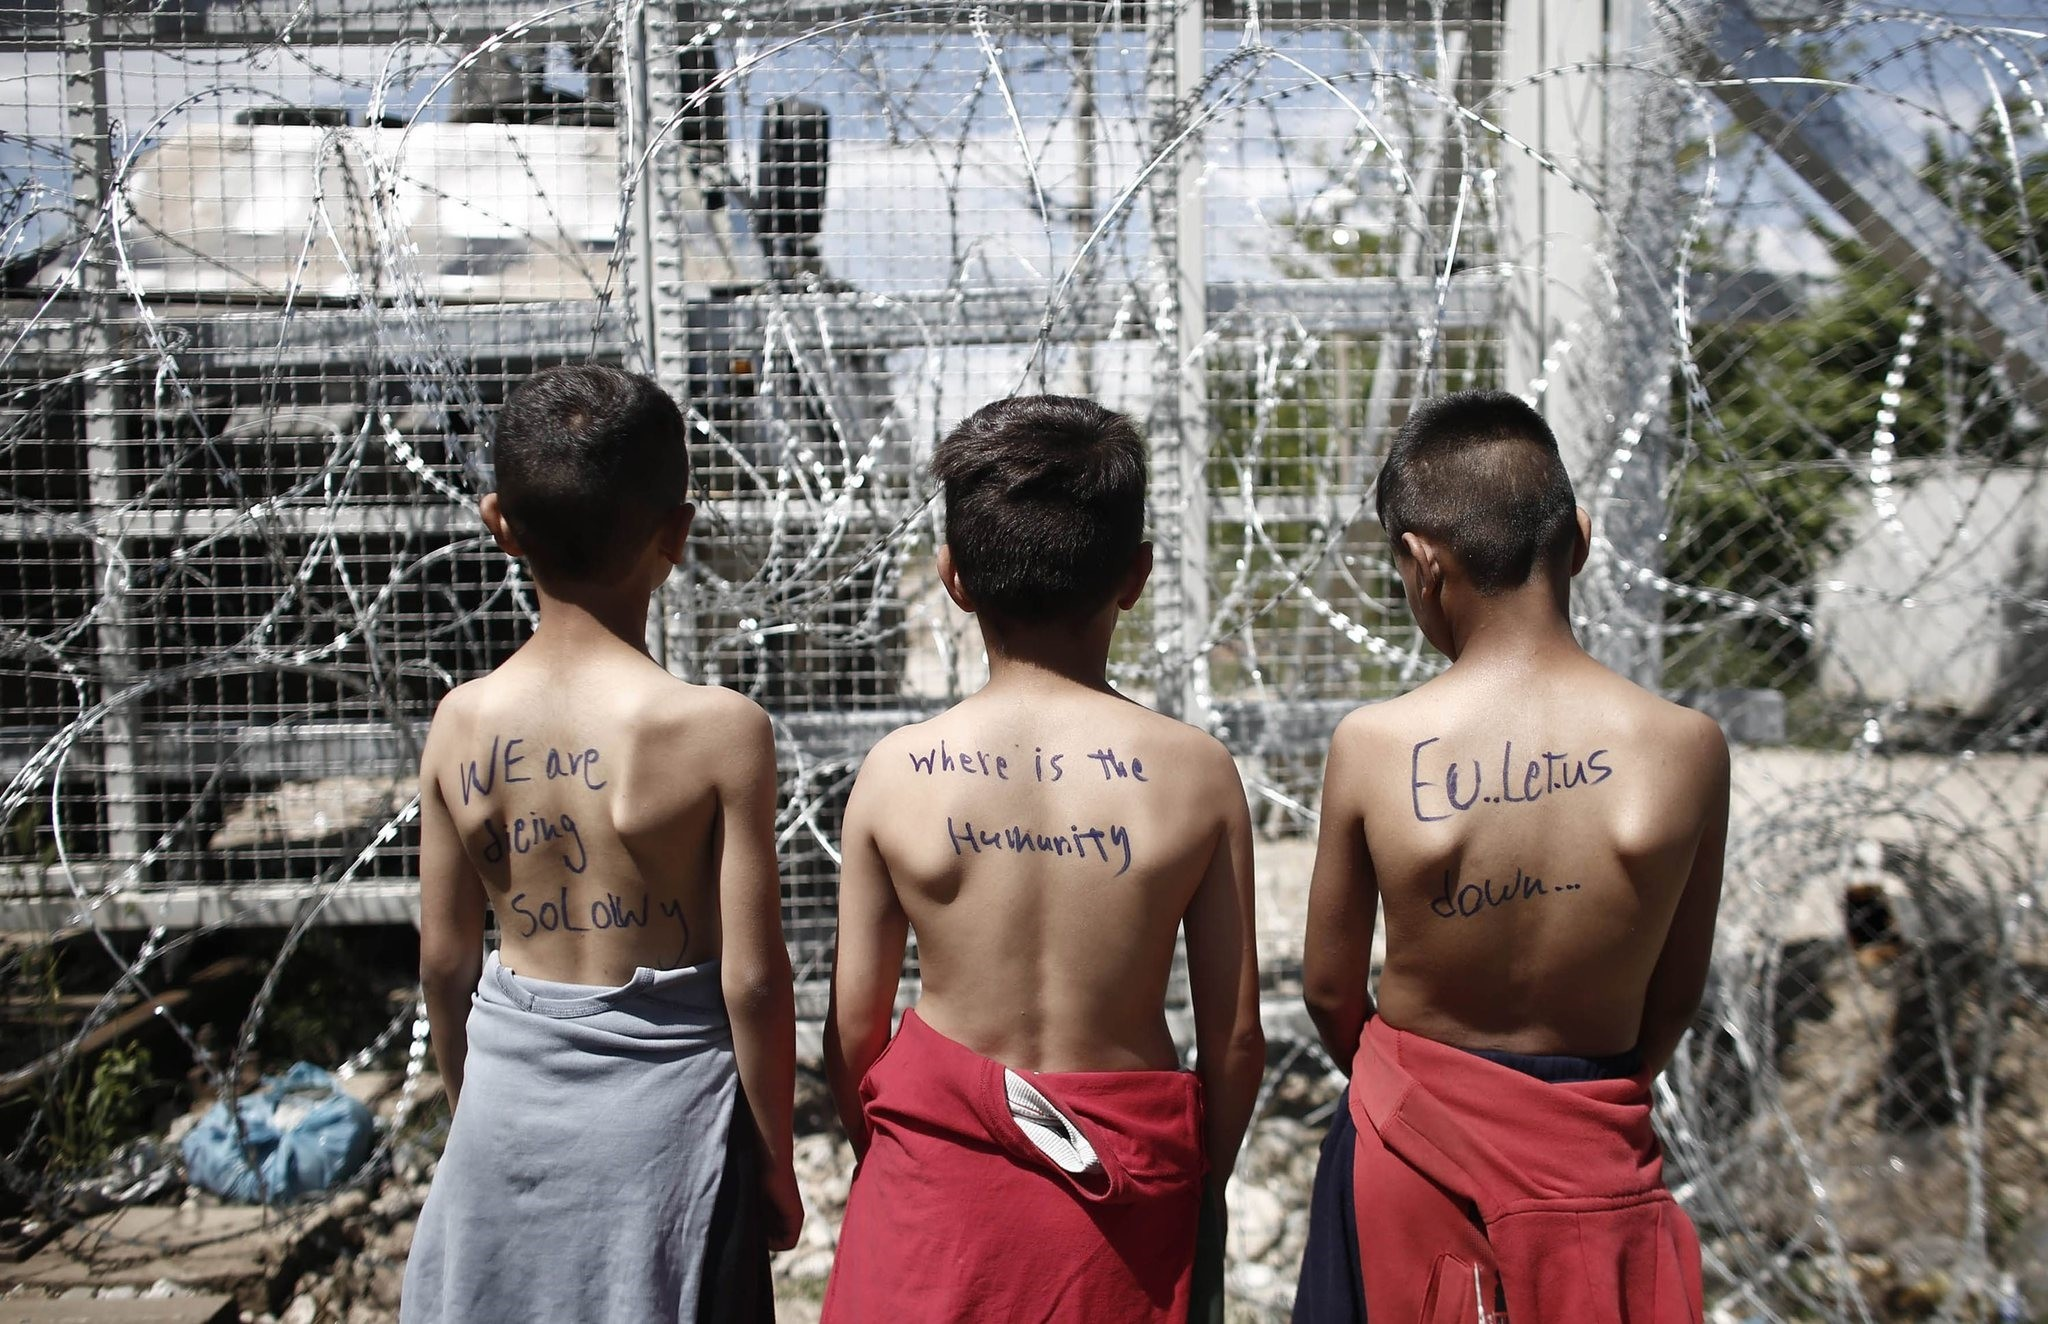 Refugee boys take part in a protest demanding the opening of the border between Greece and Former Yugoslav Republic of Macedonia (FYROM) at a refugee camp, near the village of Idomeni. (EPA Photo)